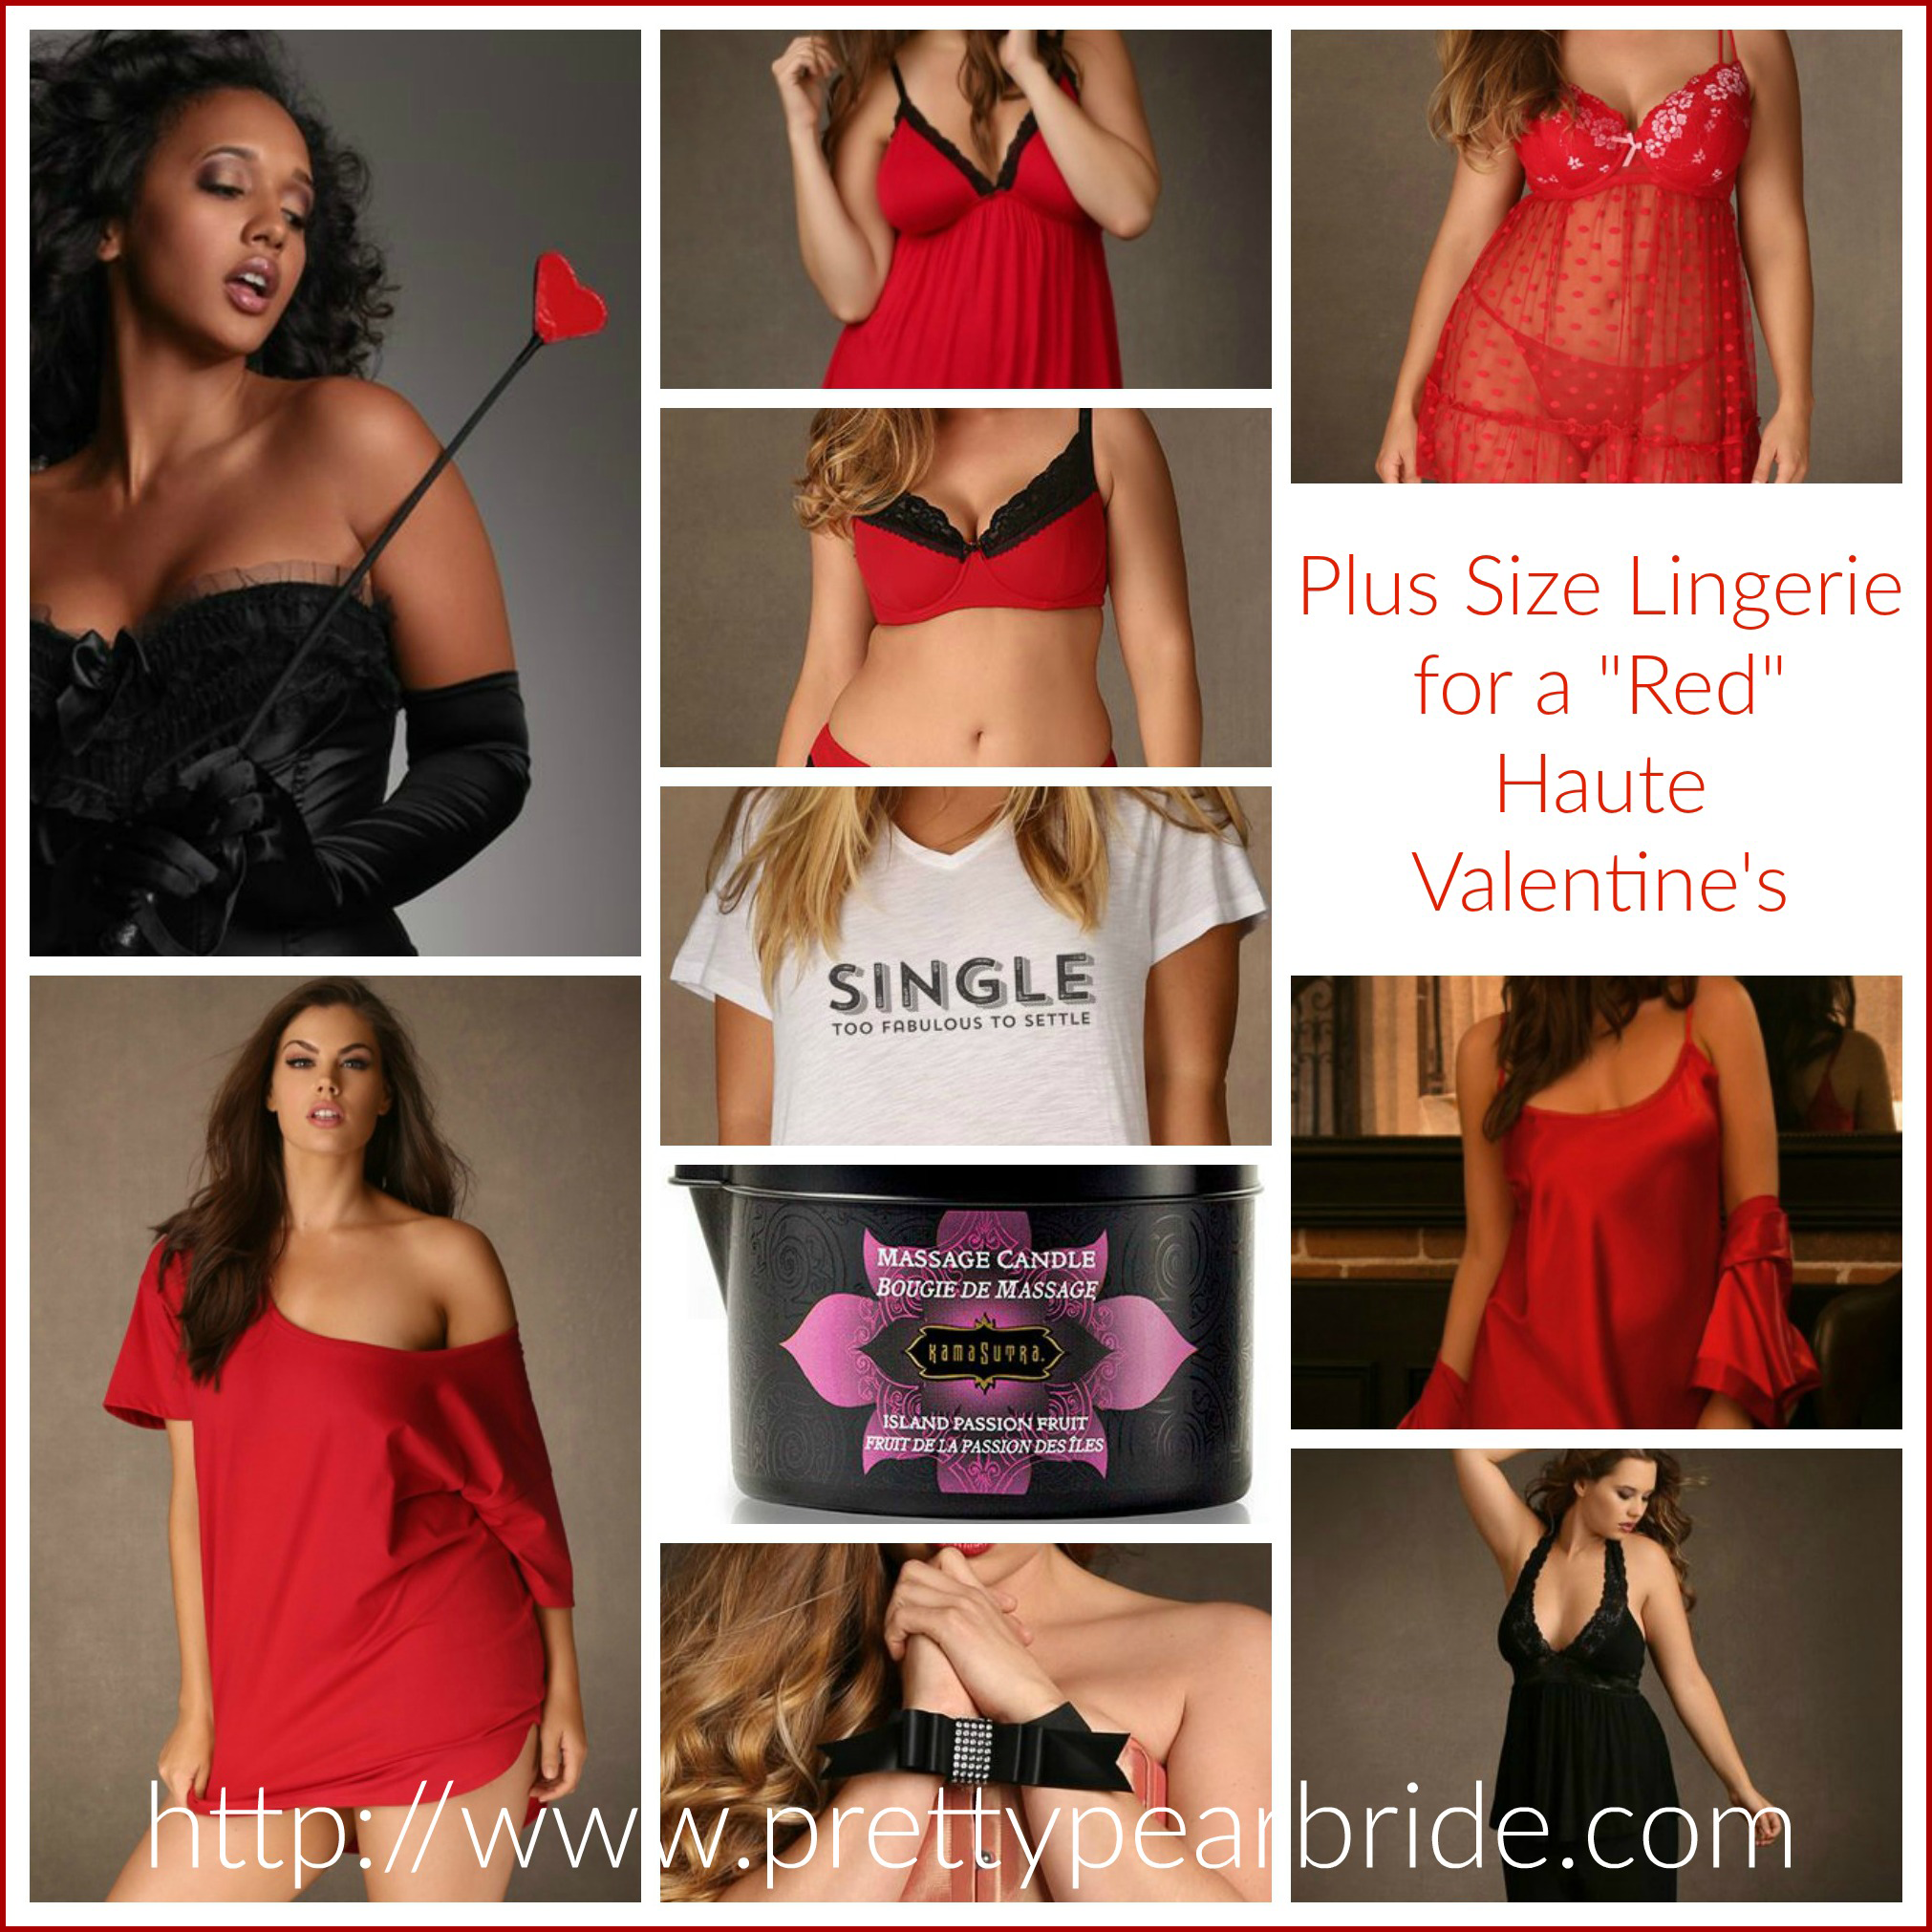 "{Sexy Saturday} Plus Size Lingerie for a ""Red"" Haute Romance"